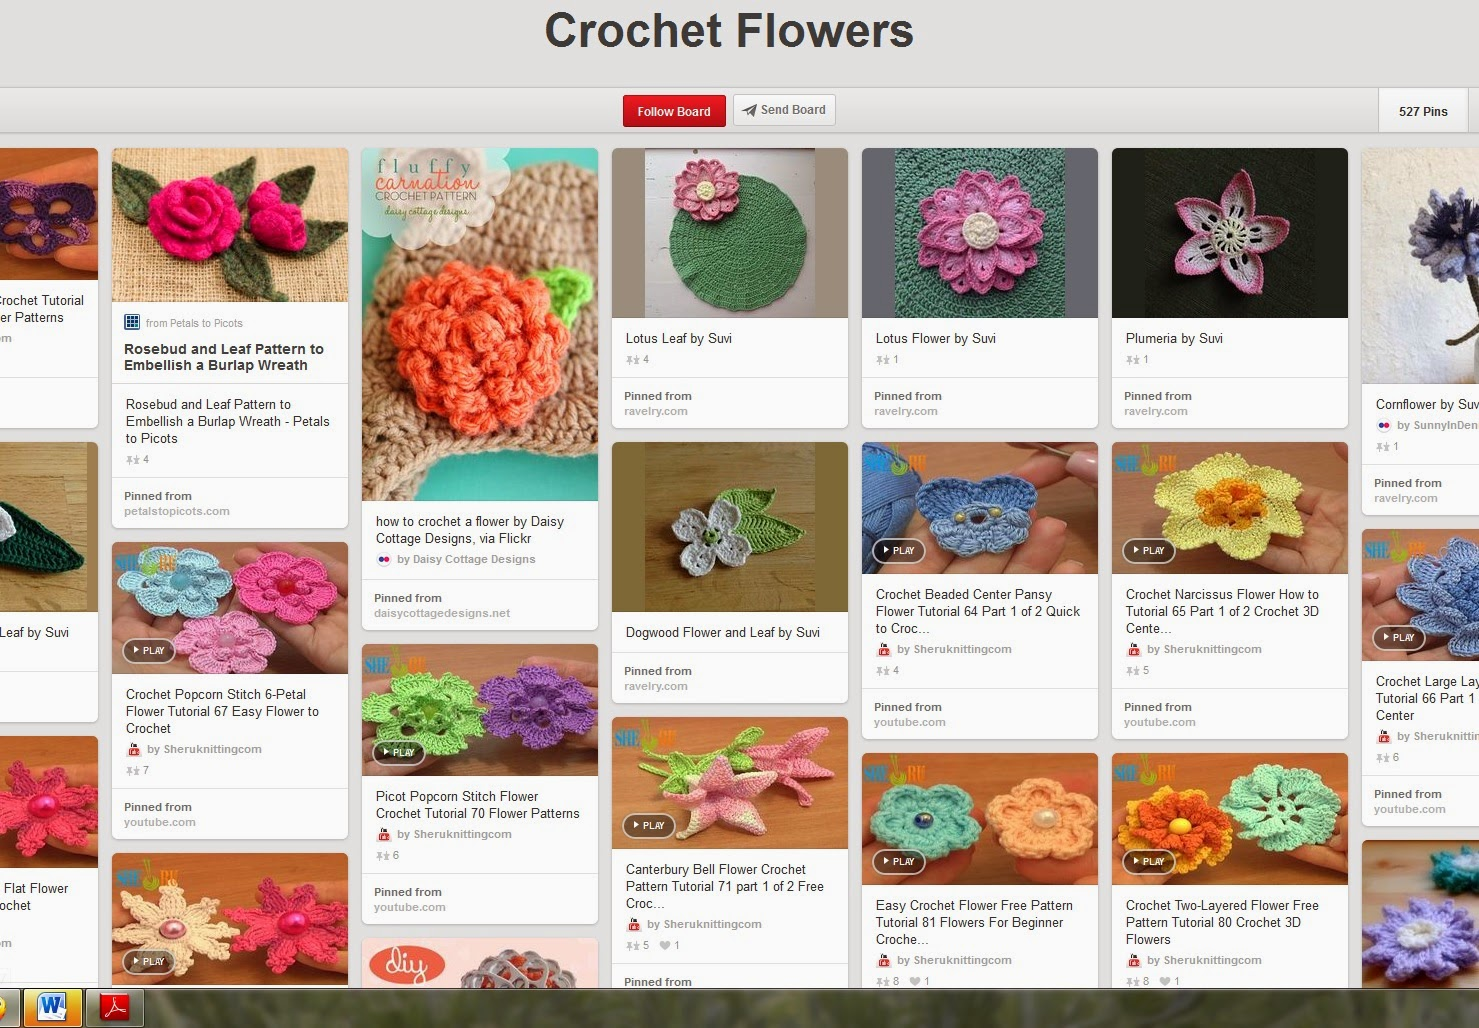 http://crochetcafe.blogspot.com/search/label/Pinterest%20board%20of%20the%20week